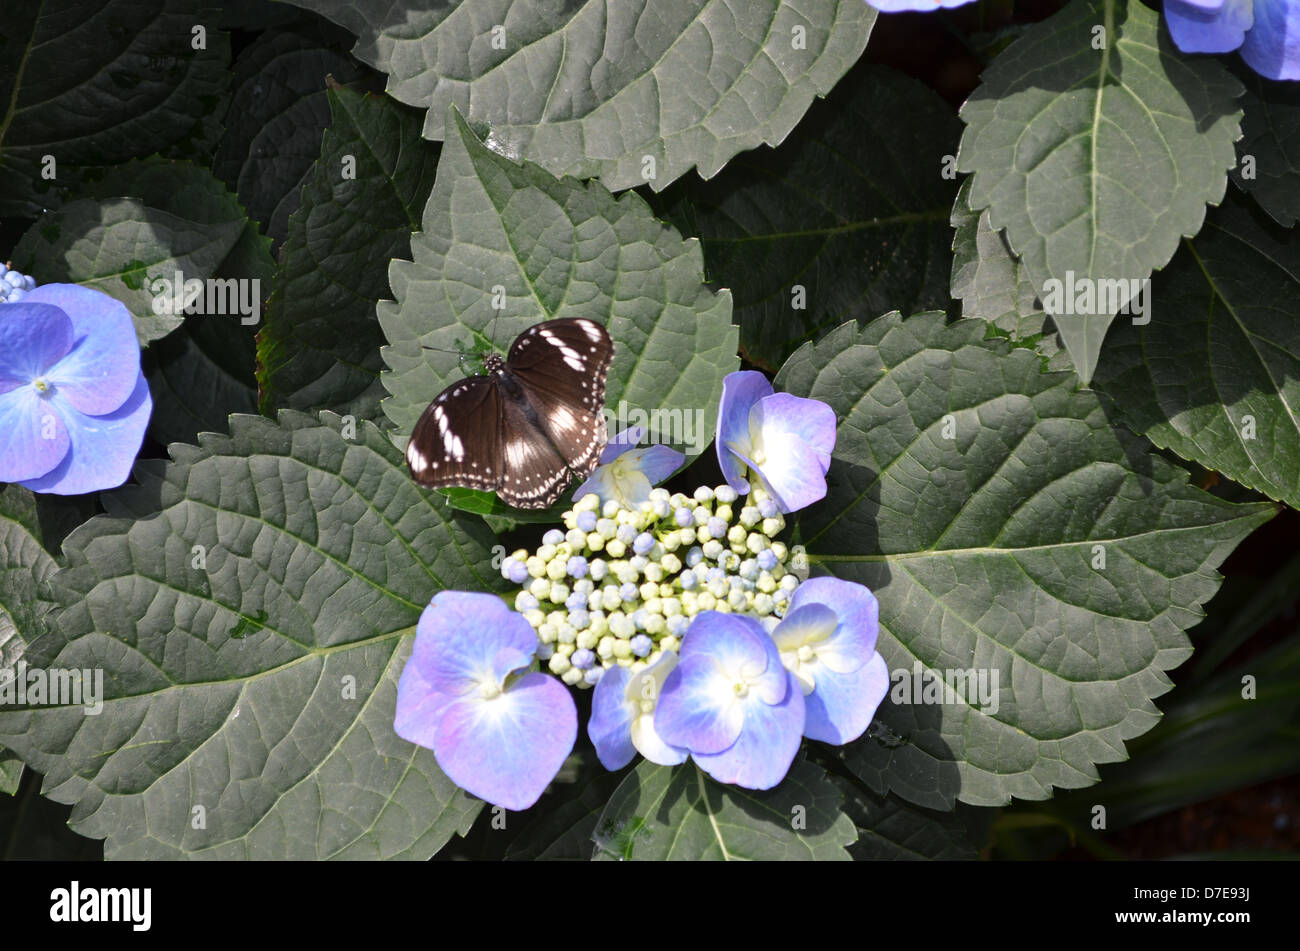 Dark Blue And White Flowers: Black And White Butterfly With Blue And White Flowers